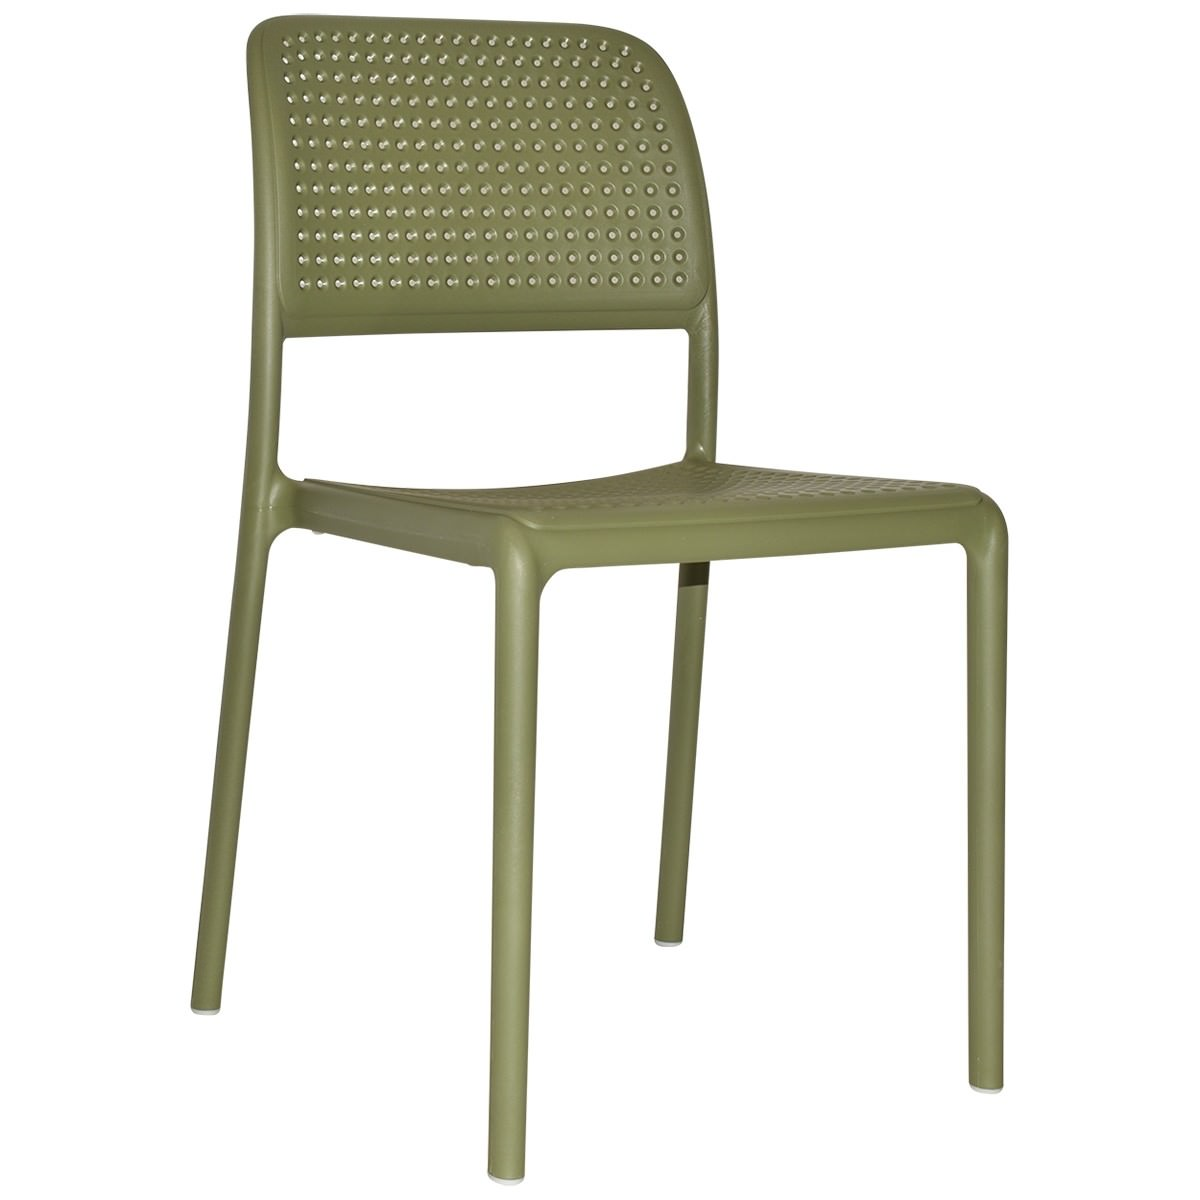 Bora Italian Made Commercial Grade Stackable Indoor / Outdoor Dining Chair, Agave